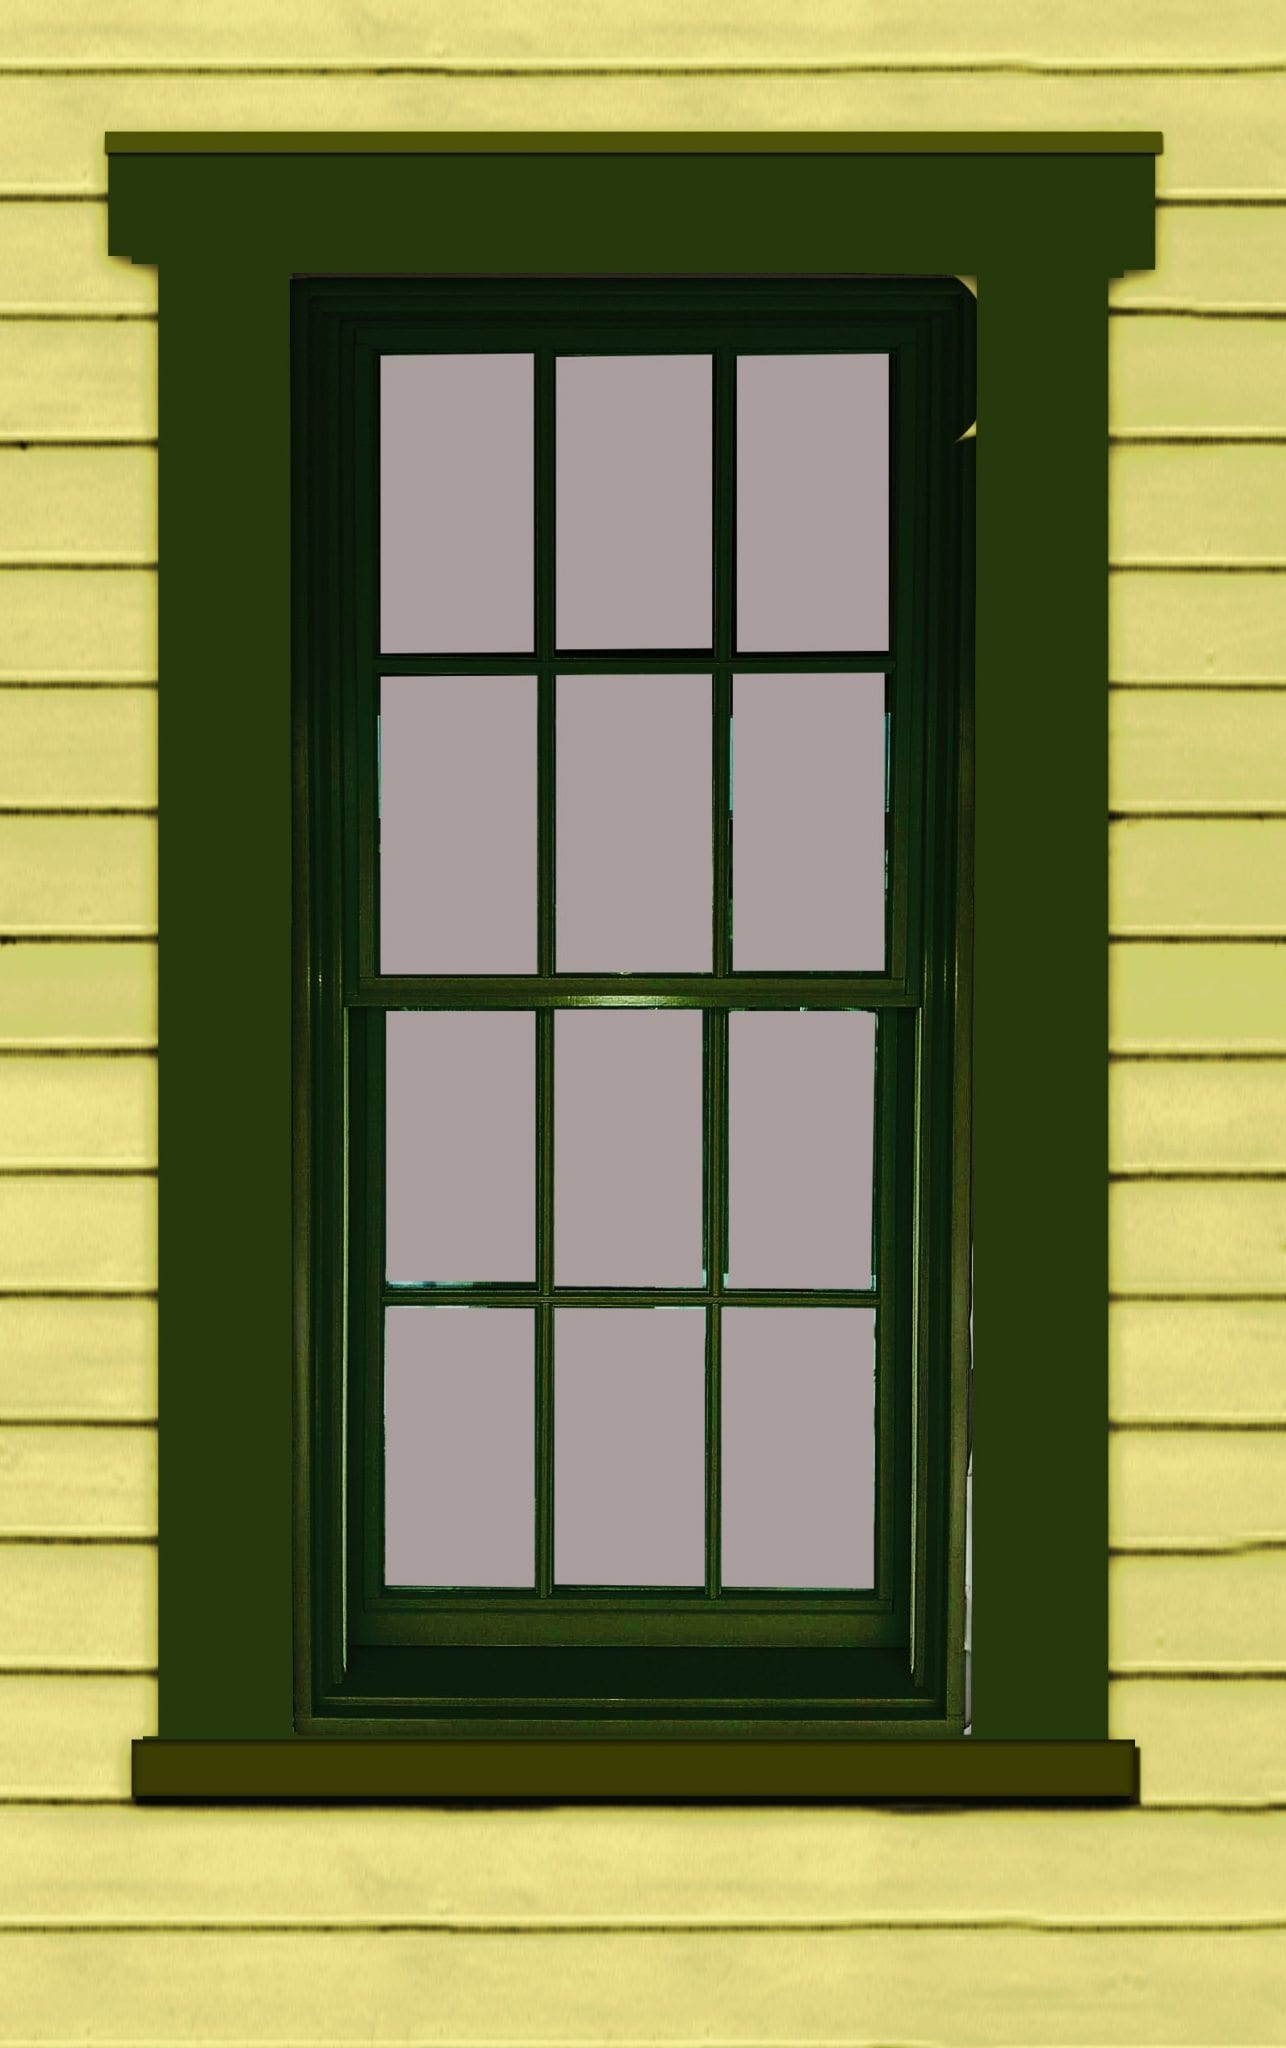 painting windows color placement mistakes green anderson 400 window